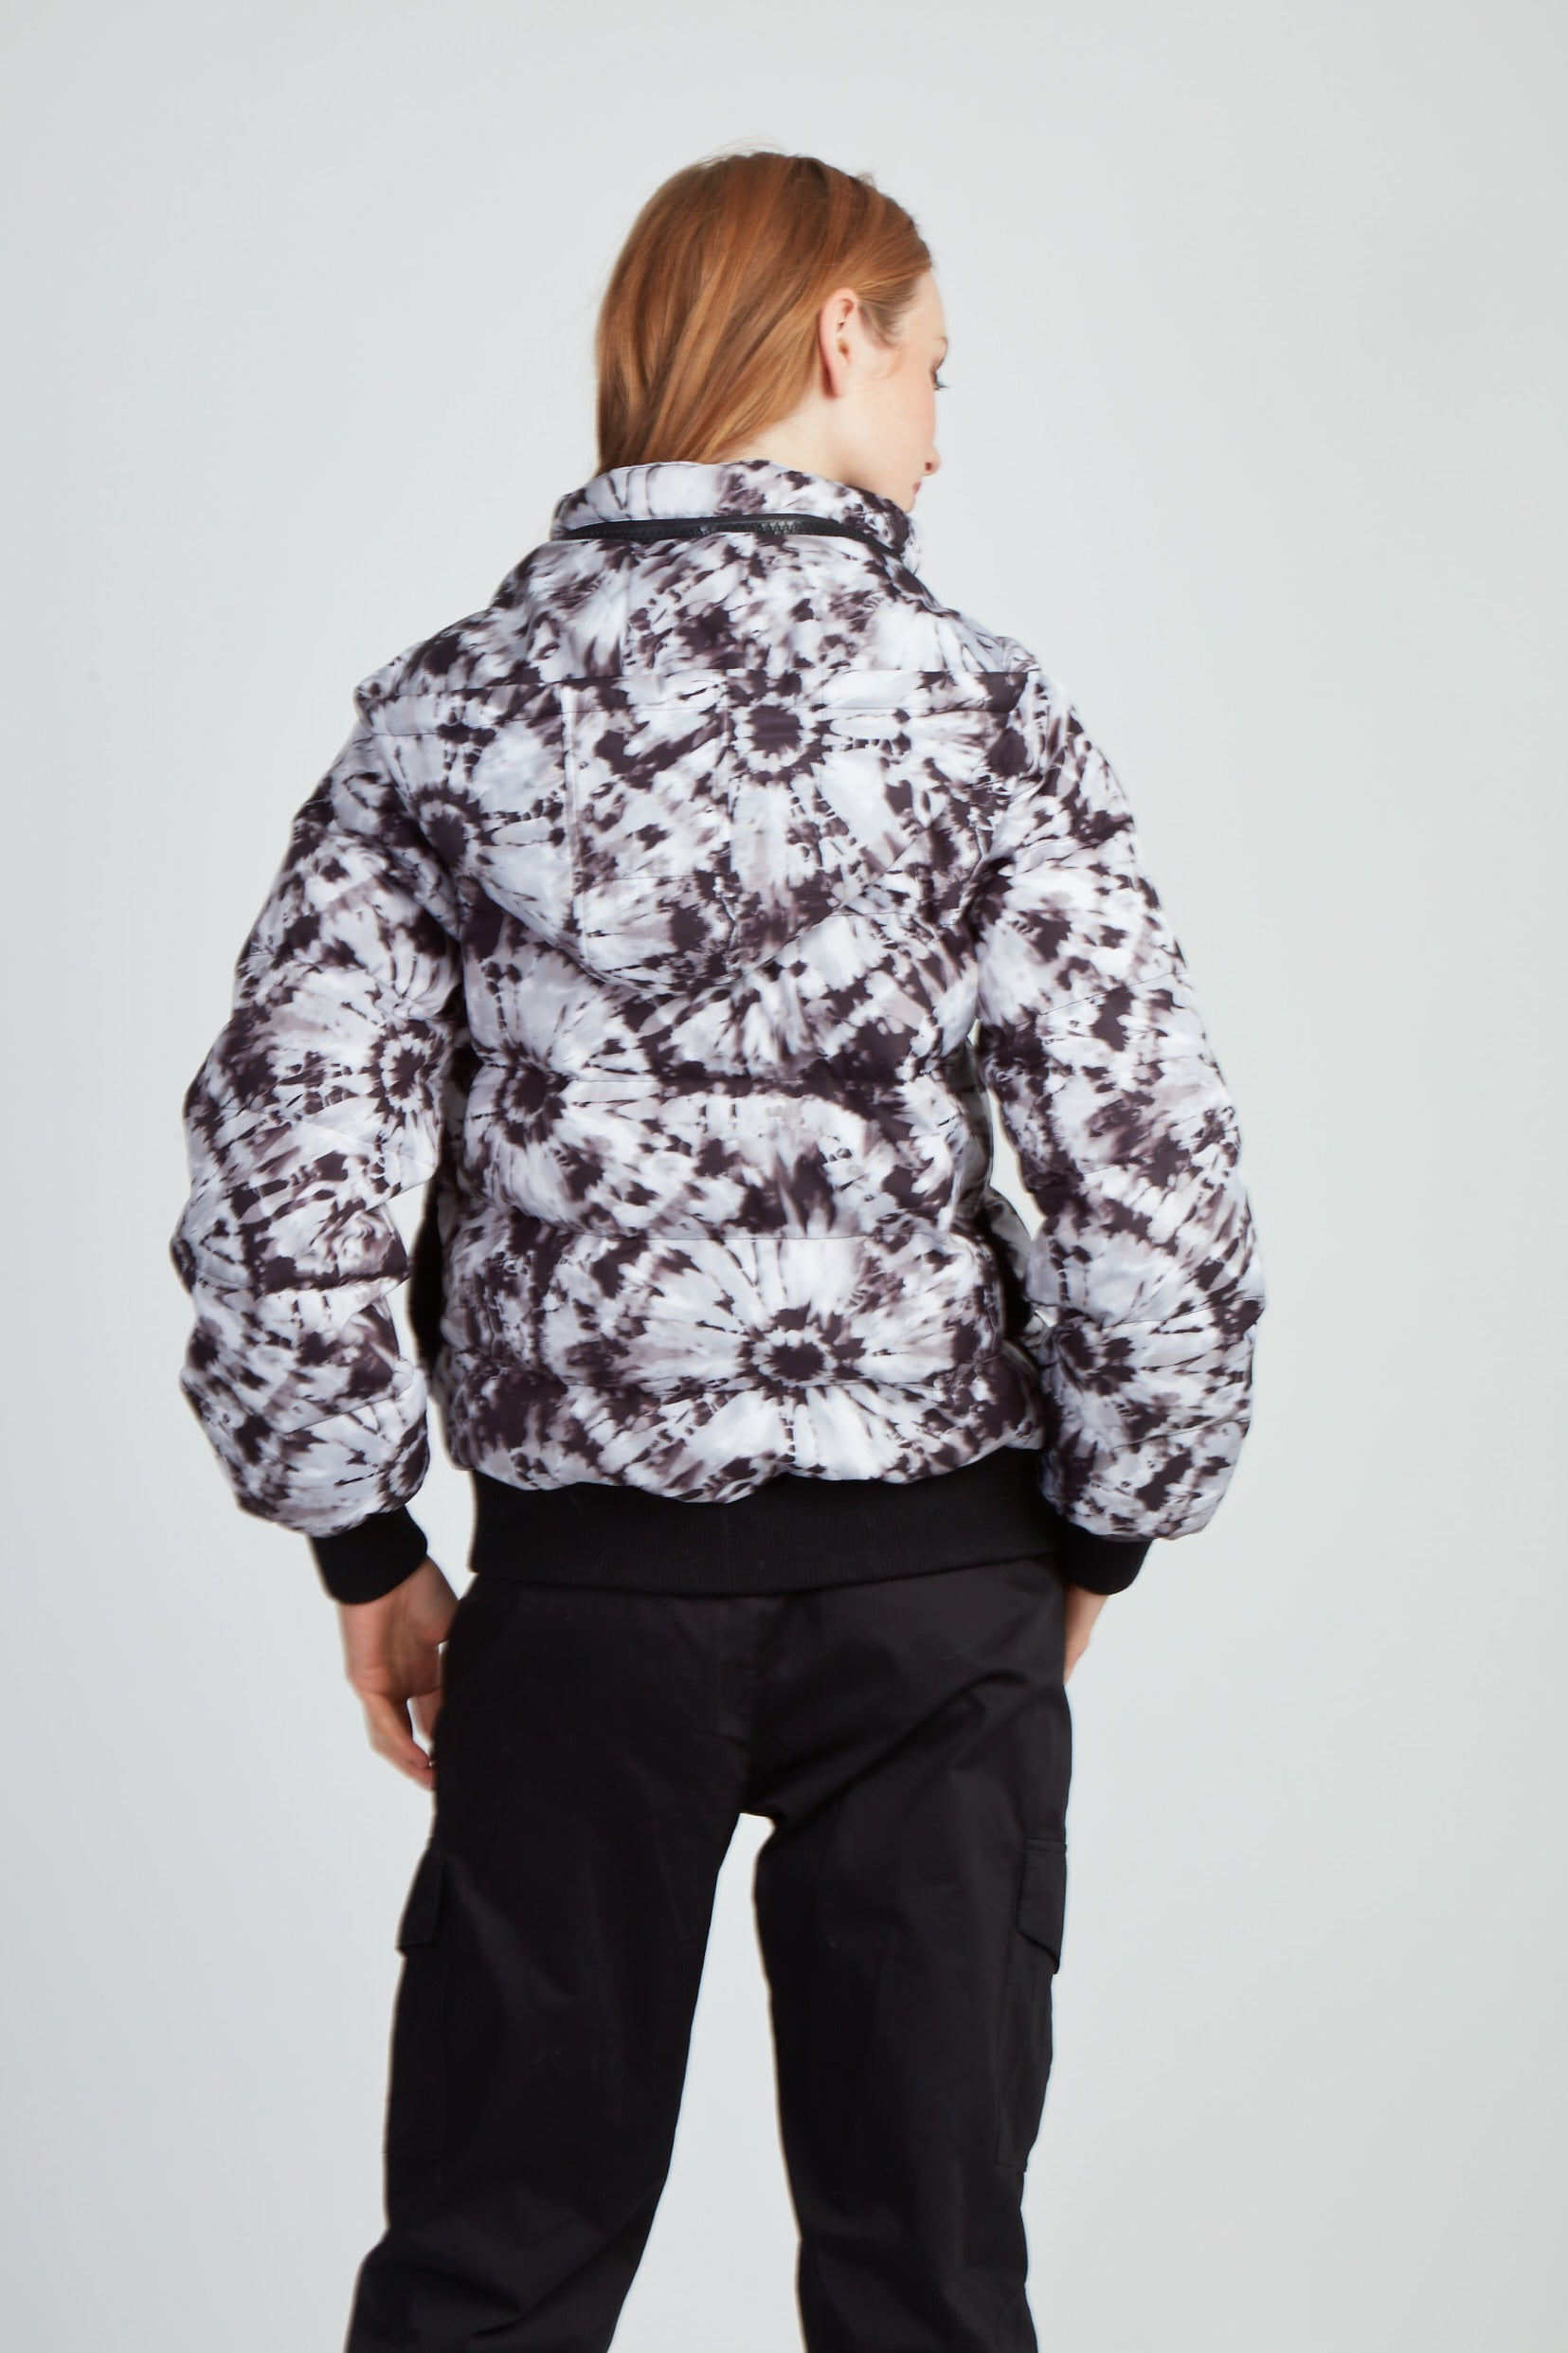 The Throwback Tie Dye Bomber